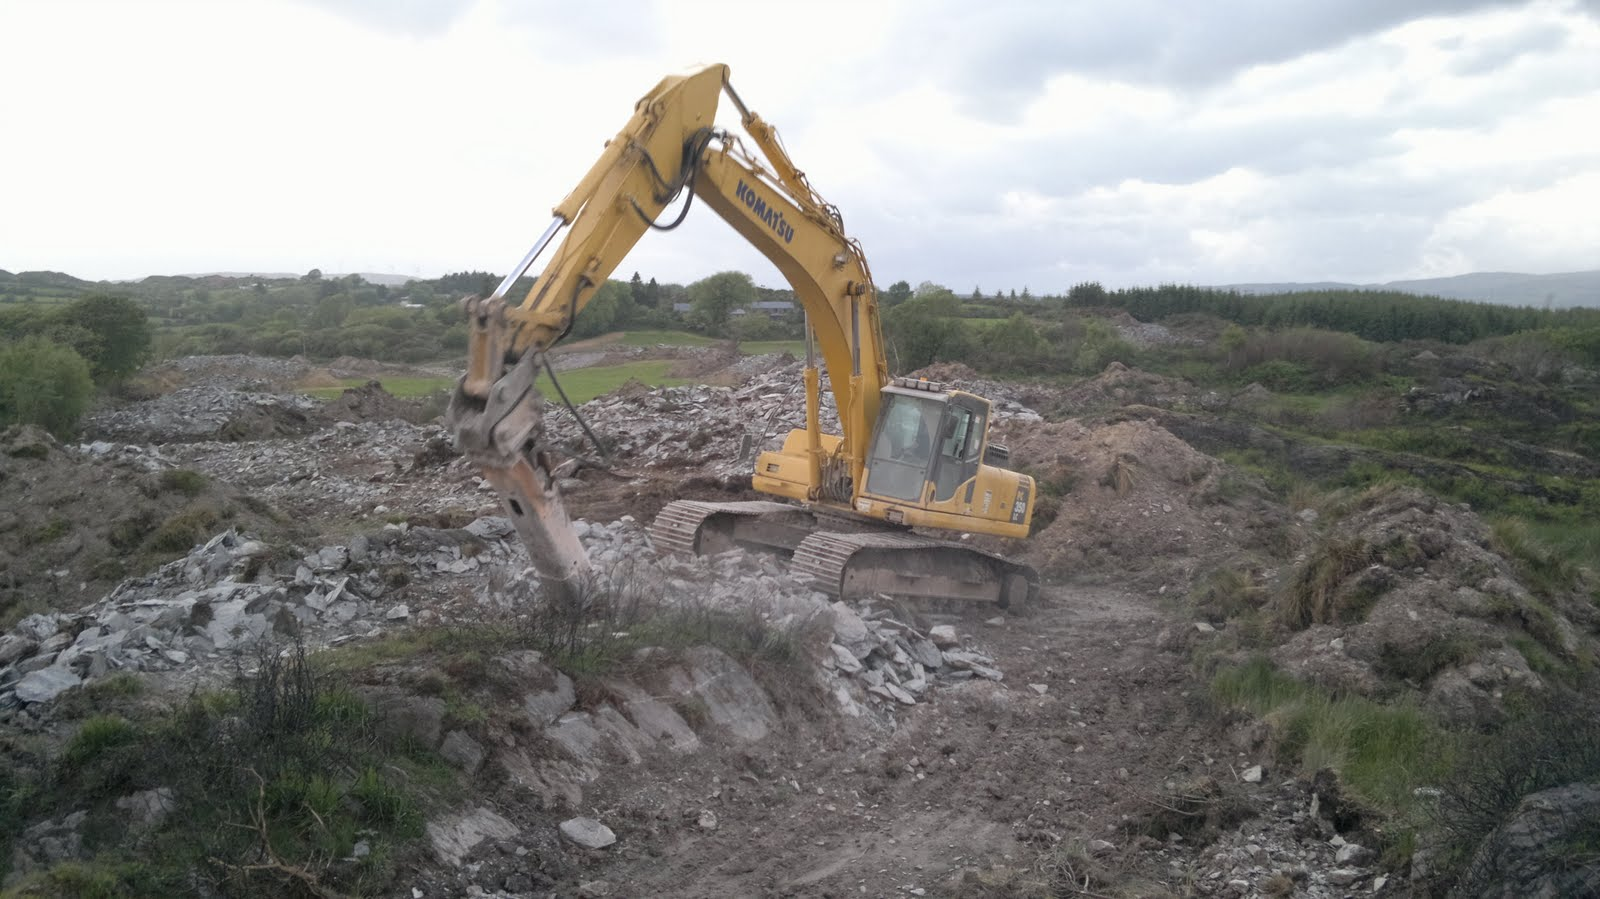 Casey plant hire agricultural land reclamation project for Soil reclamation